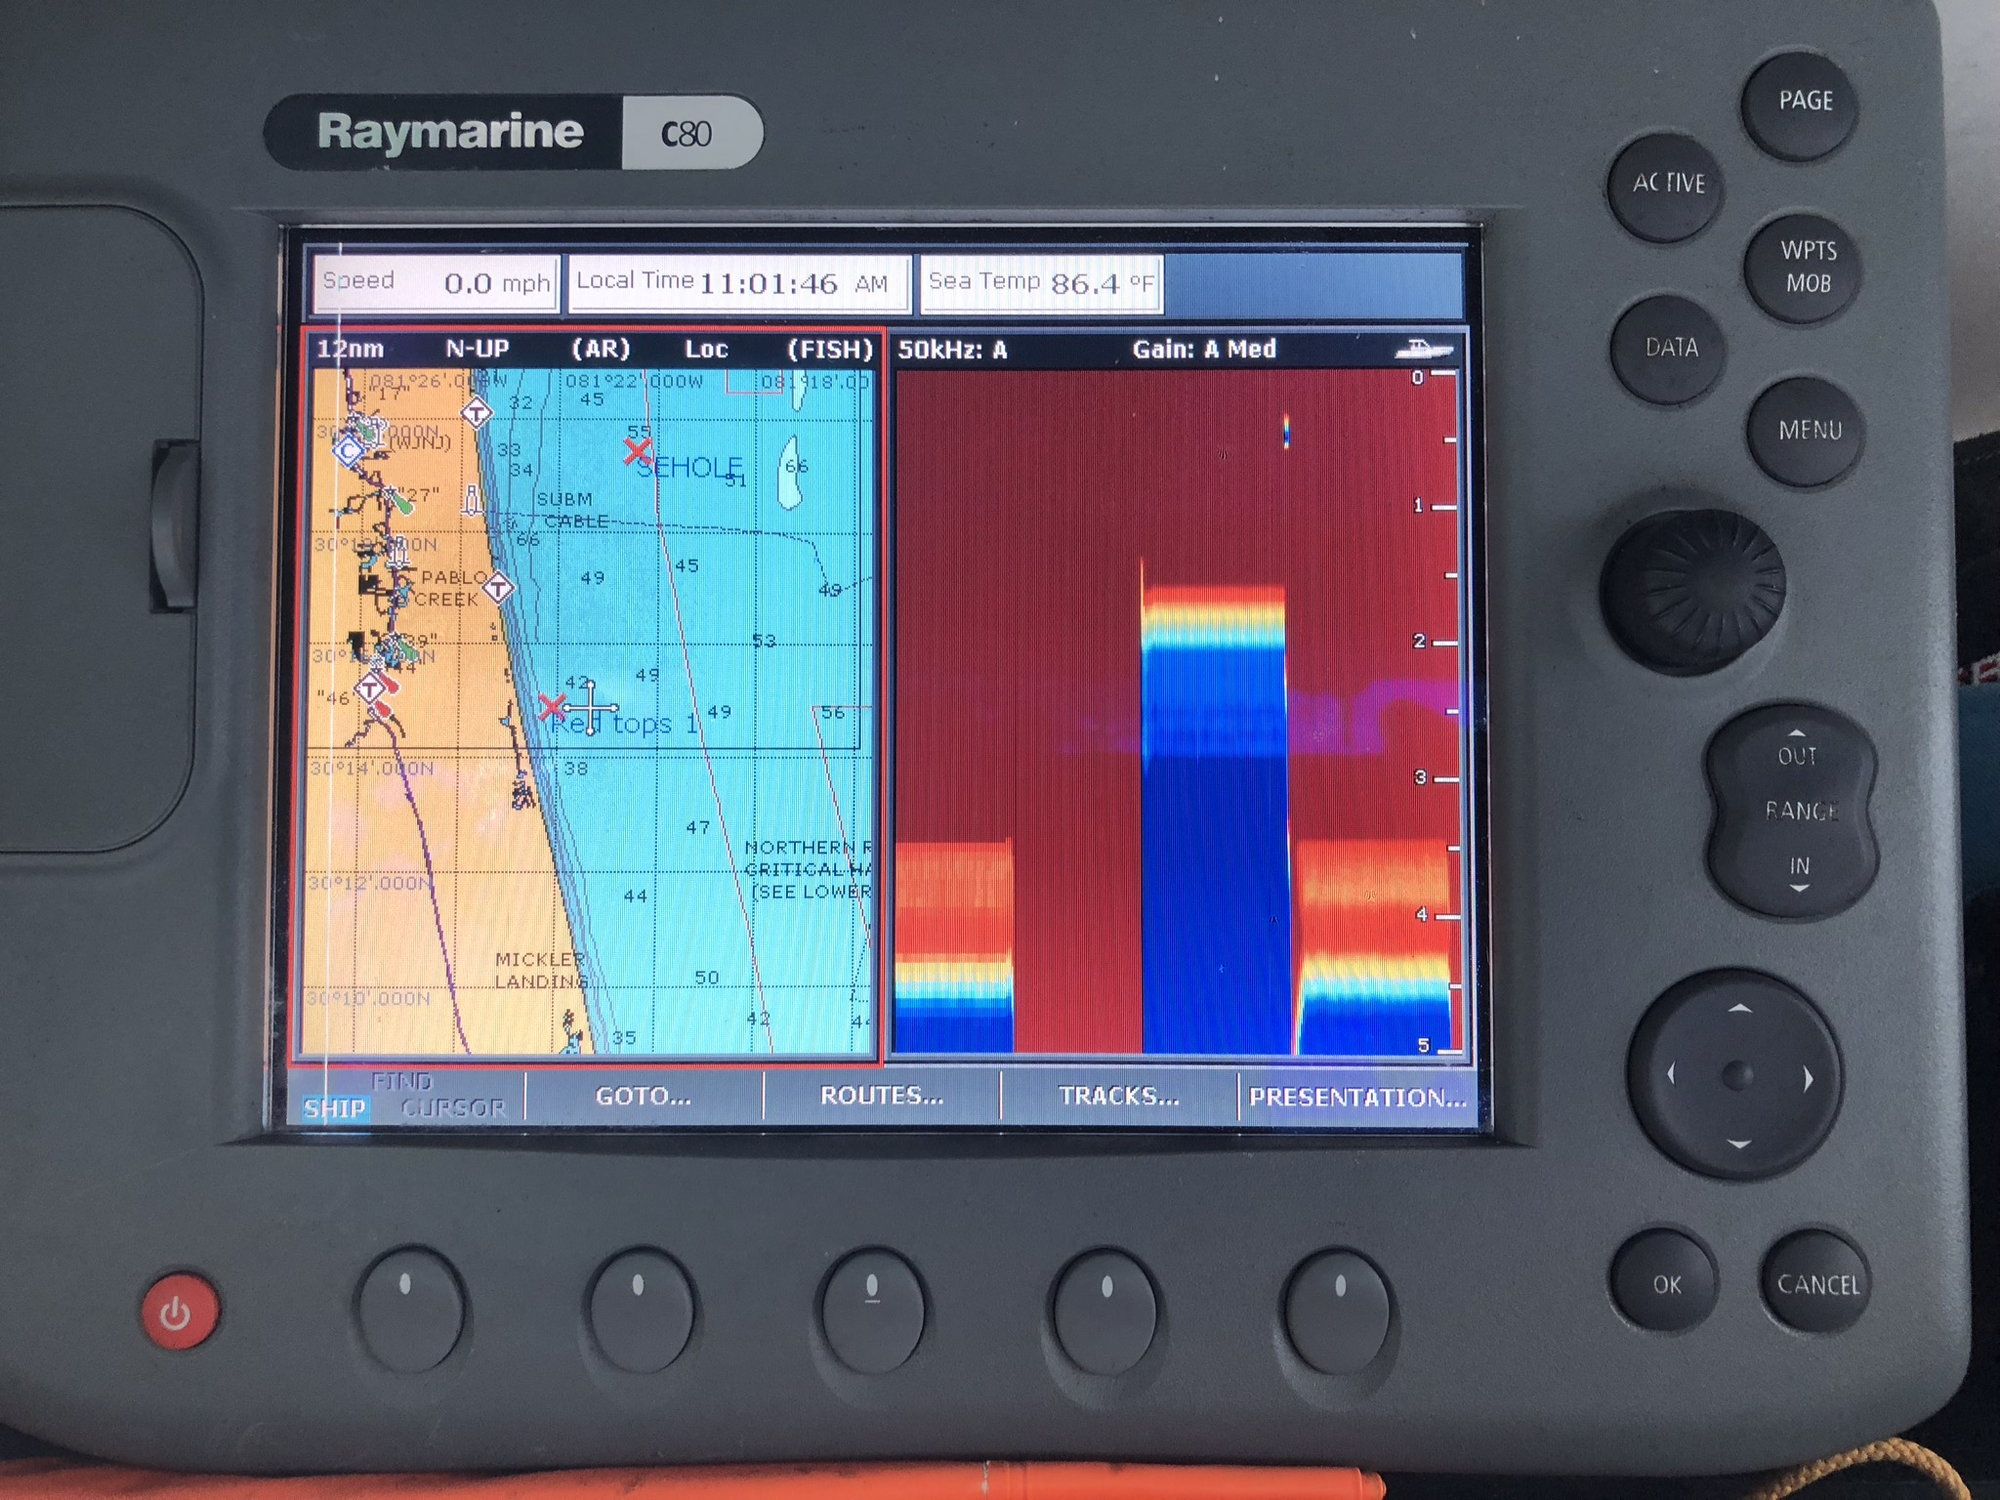 Raymarine C Wiring Diagram on seatalk hs, c120 cable for radar, patch cable, gps antenna, fluxgate compass, b256 transducer,